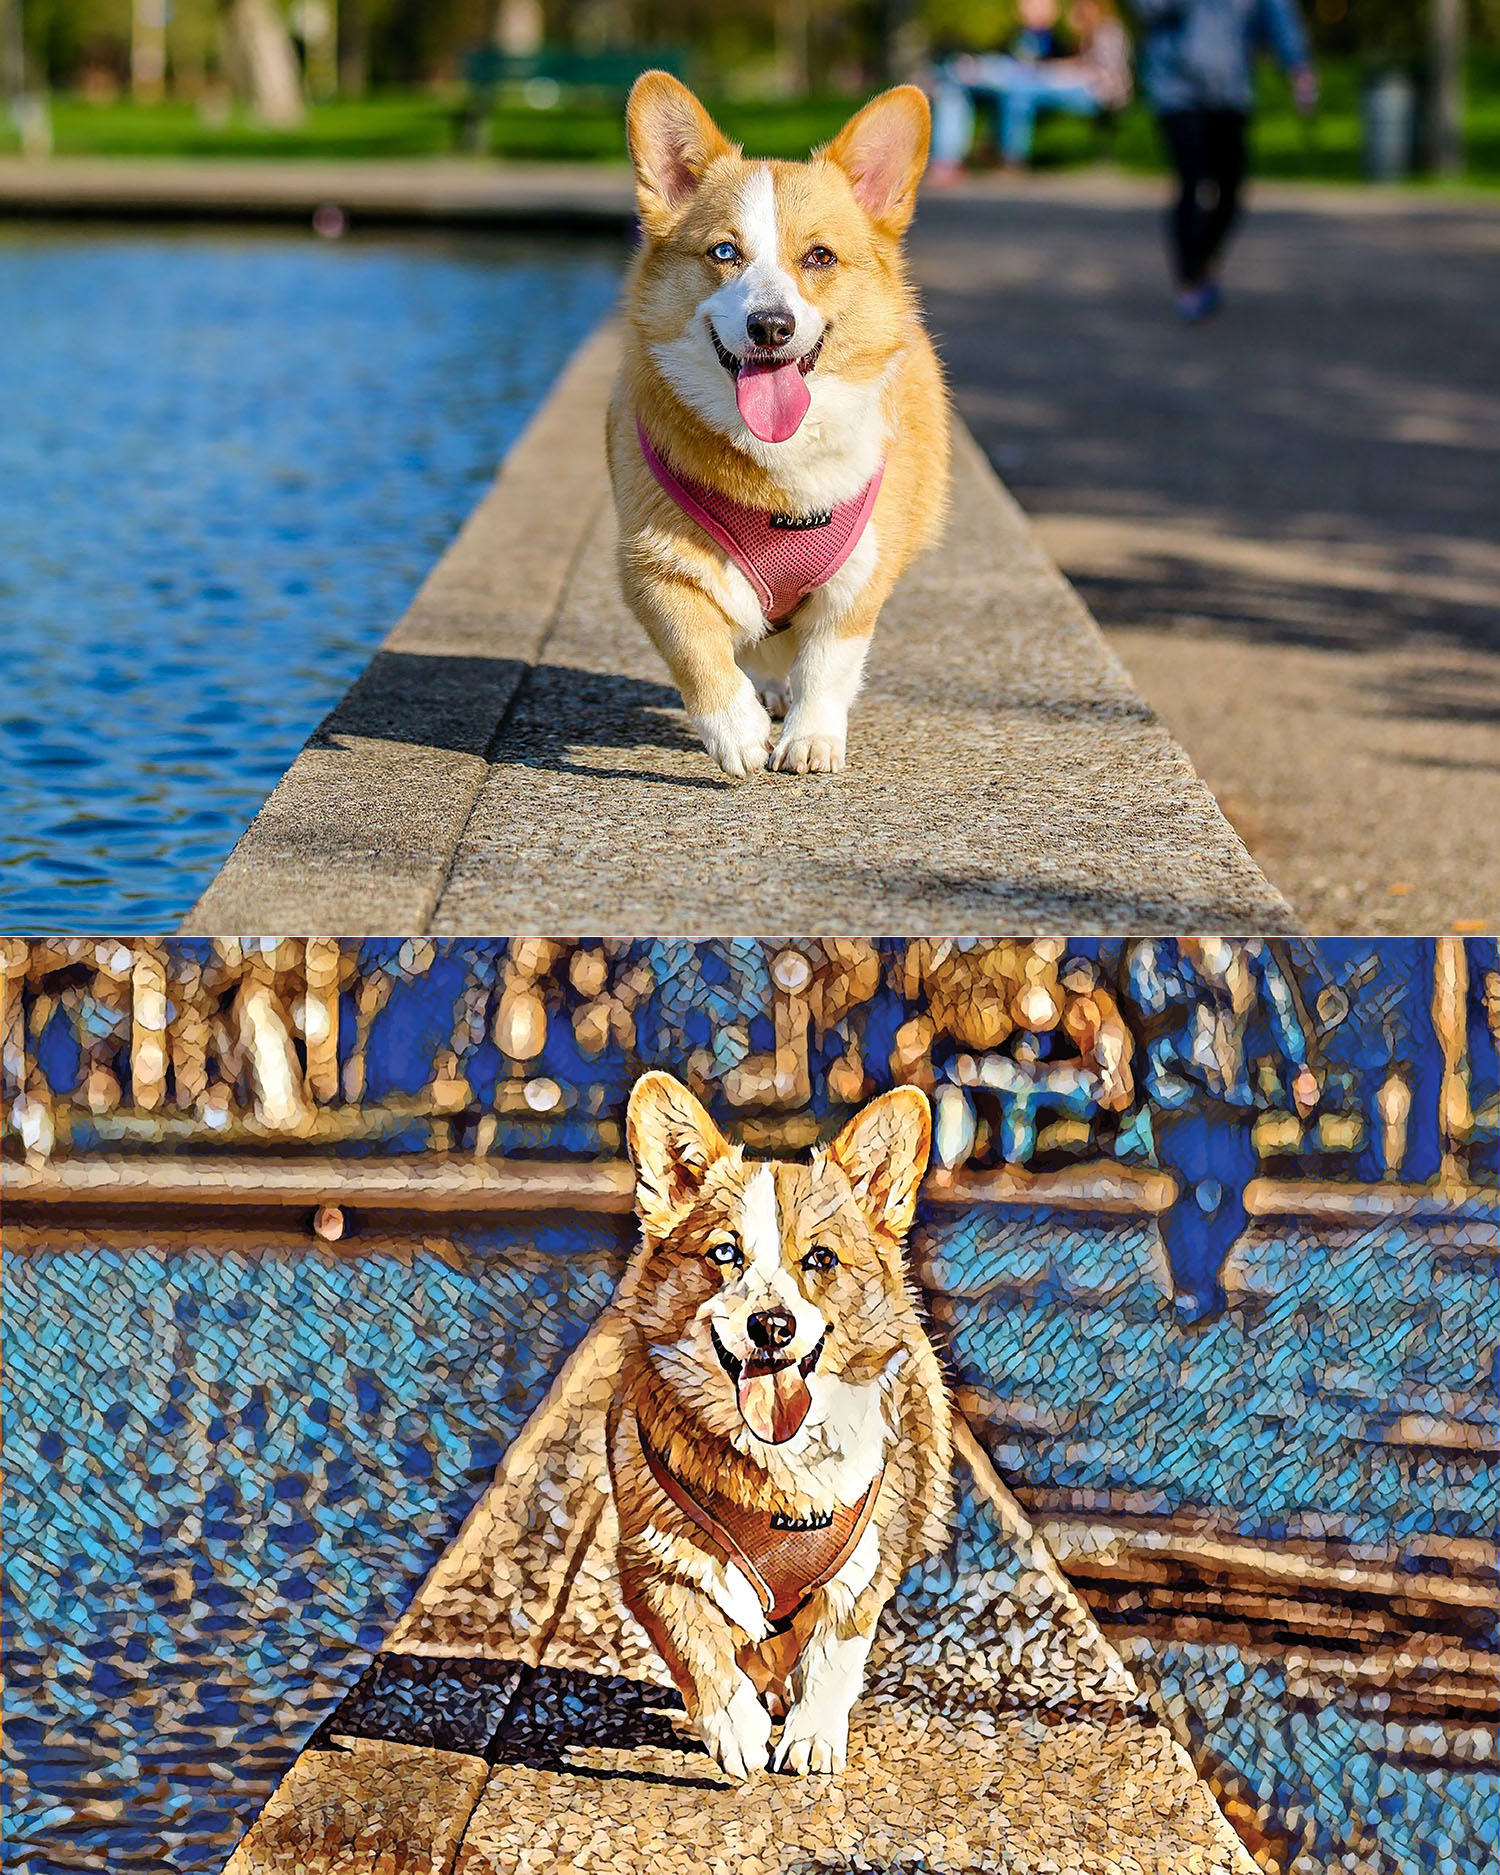 Before and after stylized image of a corgi walking on a cement barrier by the water